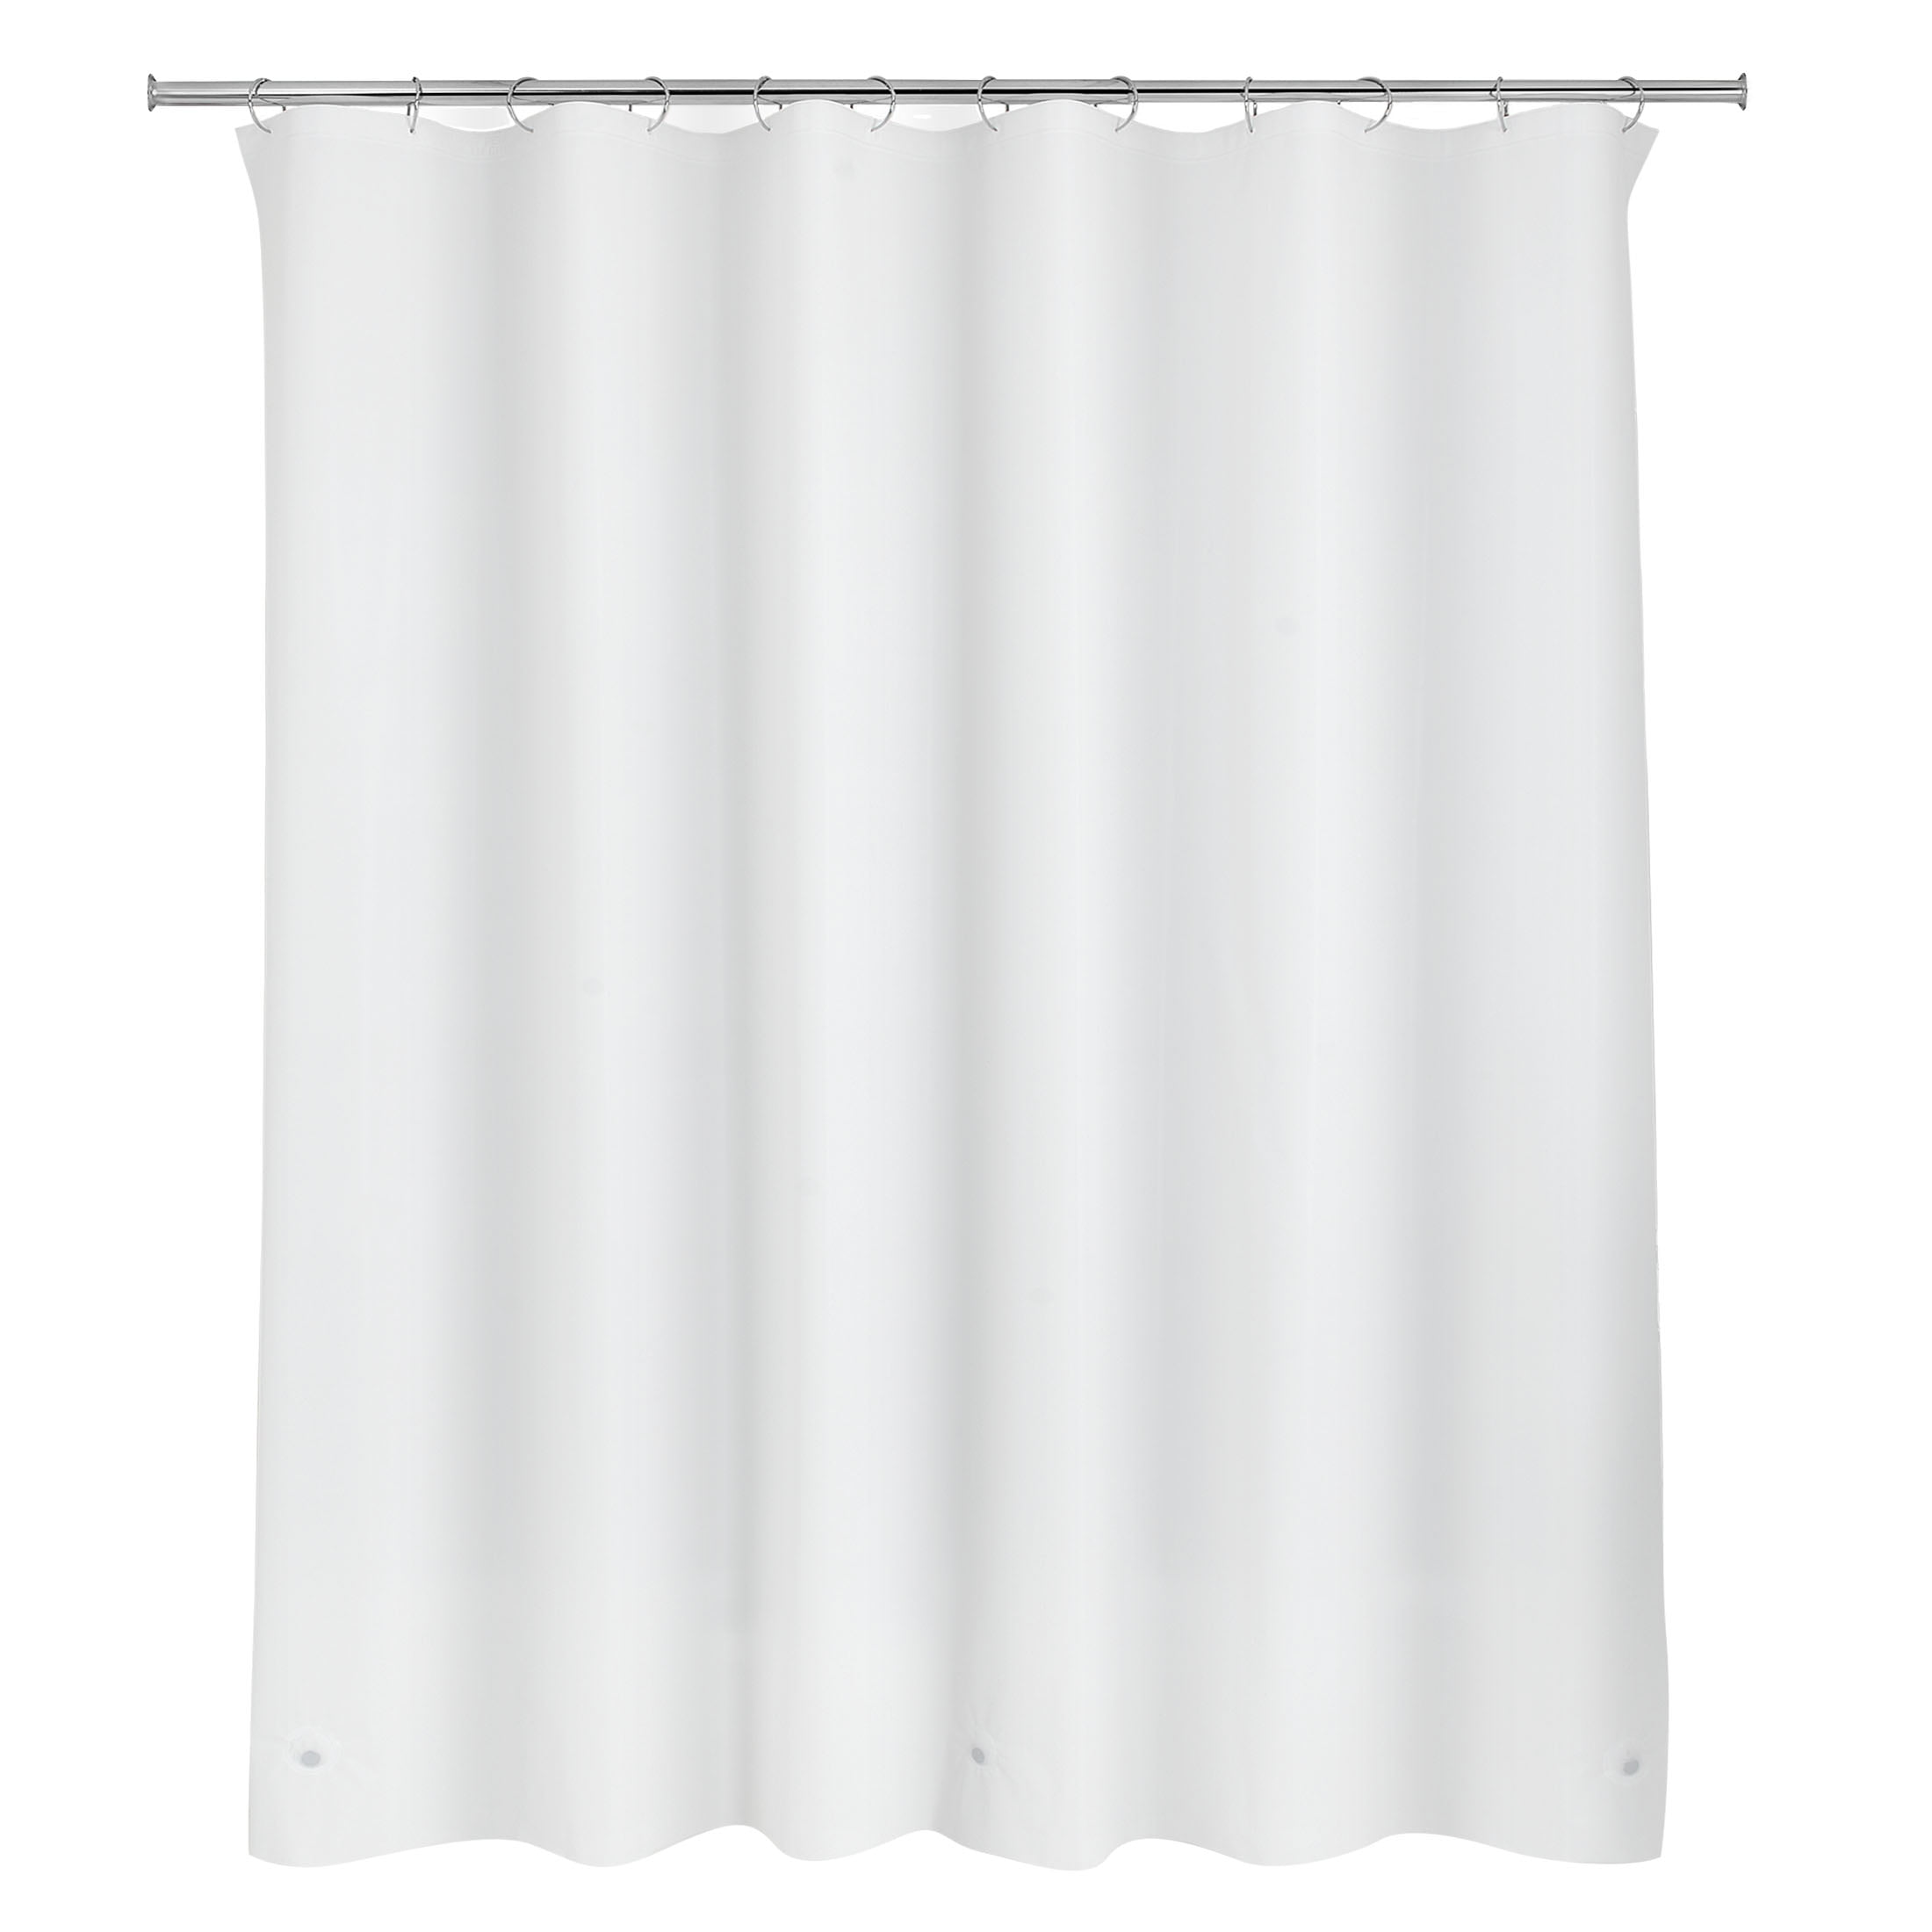 """70/"""" x 72/"""" inch Heat Embossed Textured Solid Color Fabric Shower Curtain"""